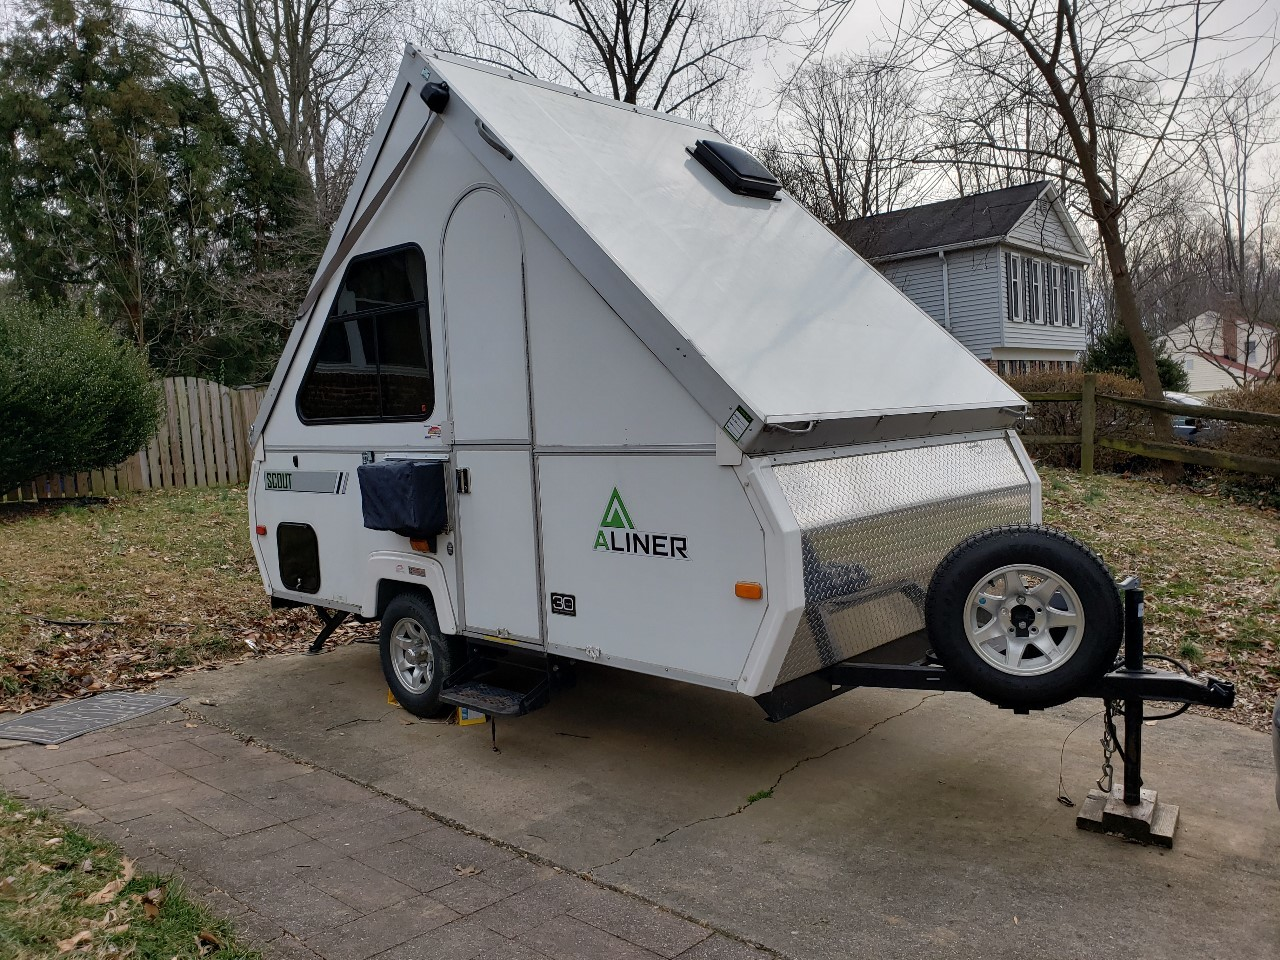 Folding Campers For Sale: 83 Folding Campers - RV Trader